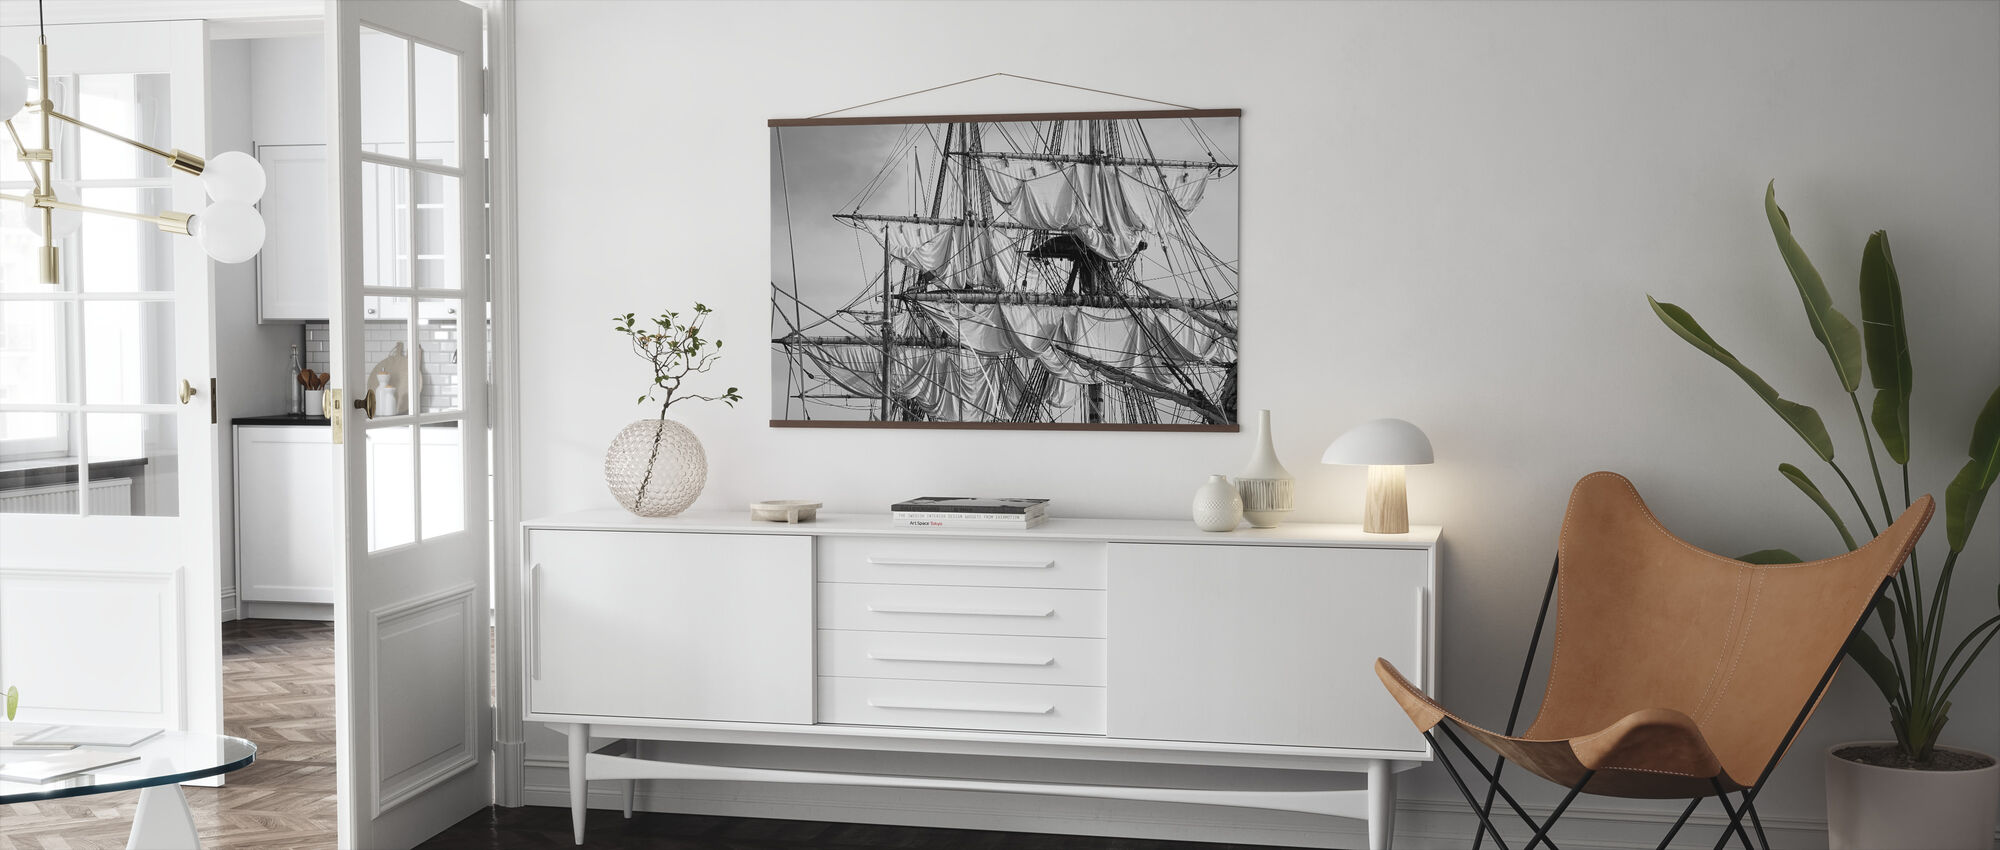 Sailing Ship - Poster - Living Room